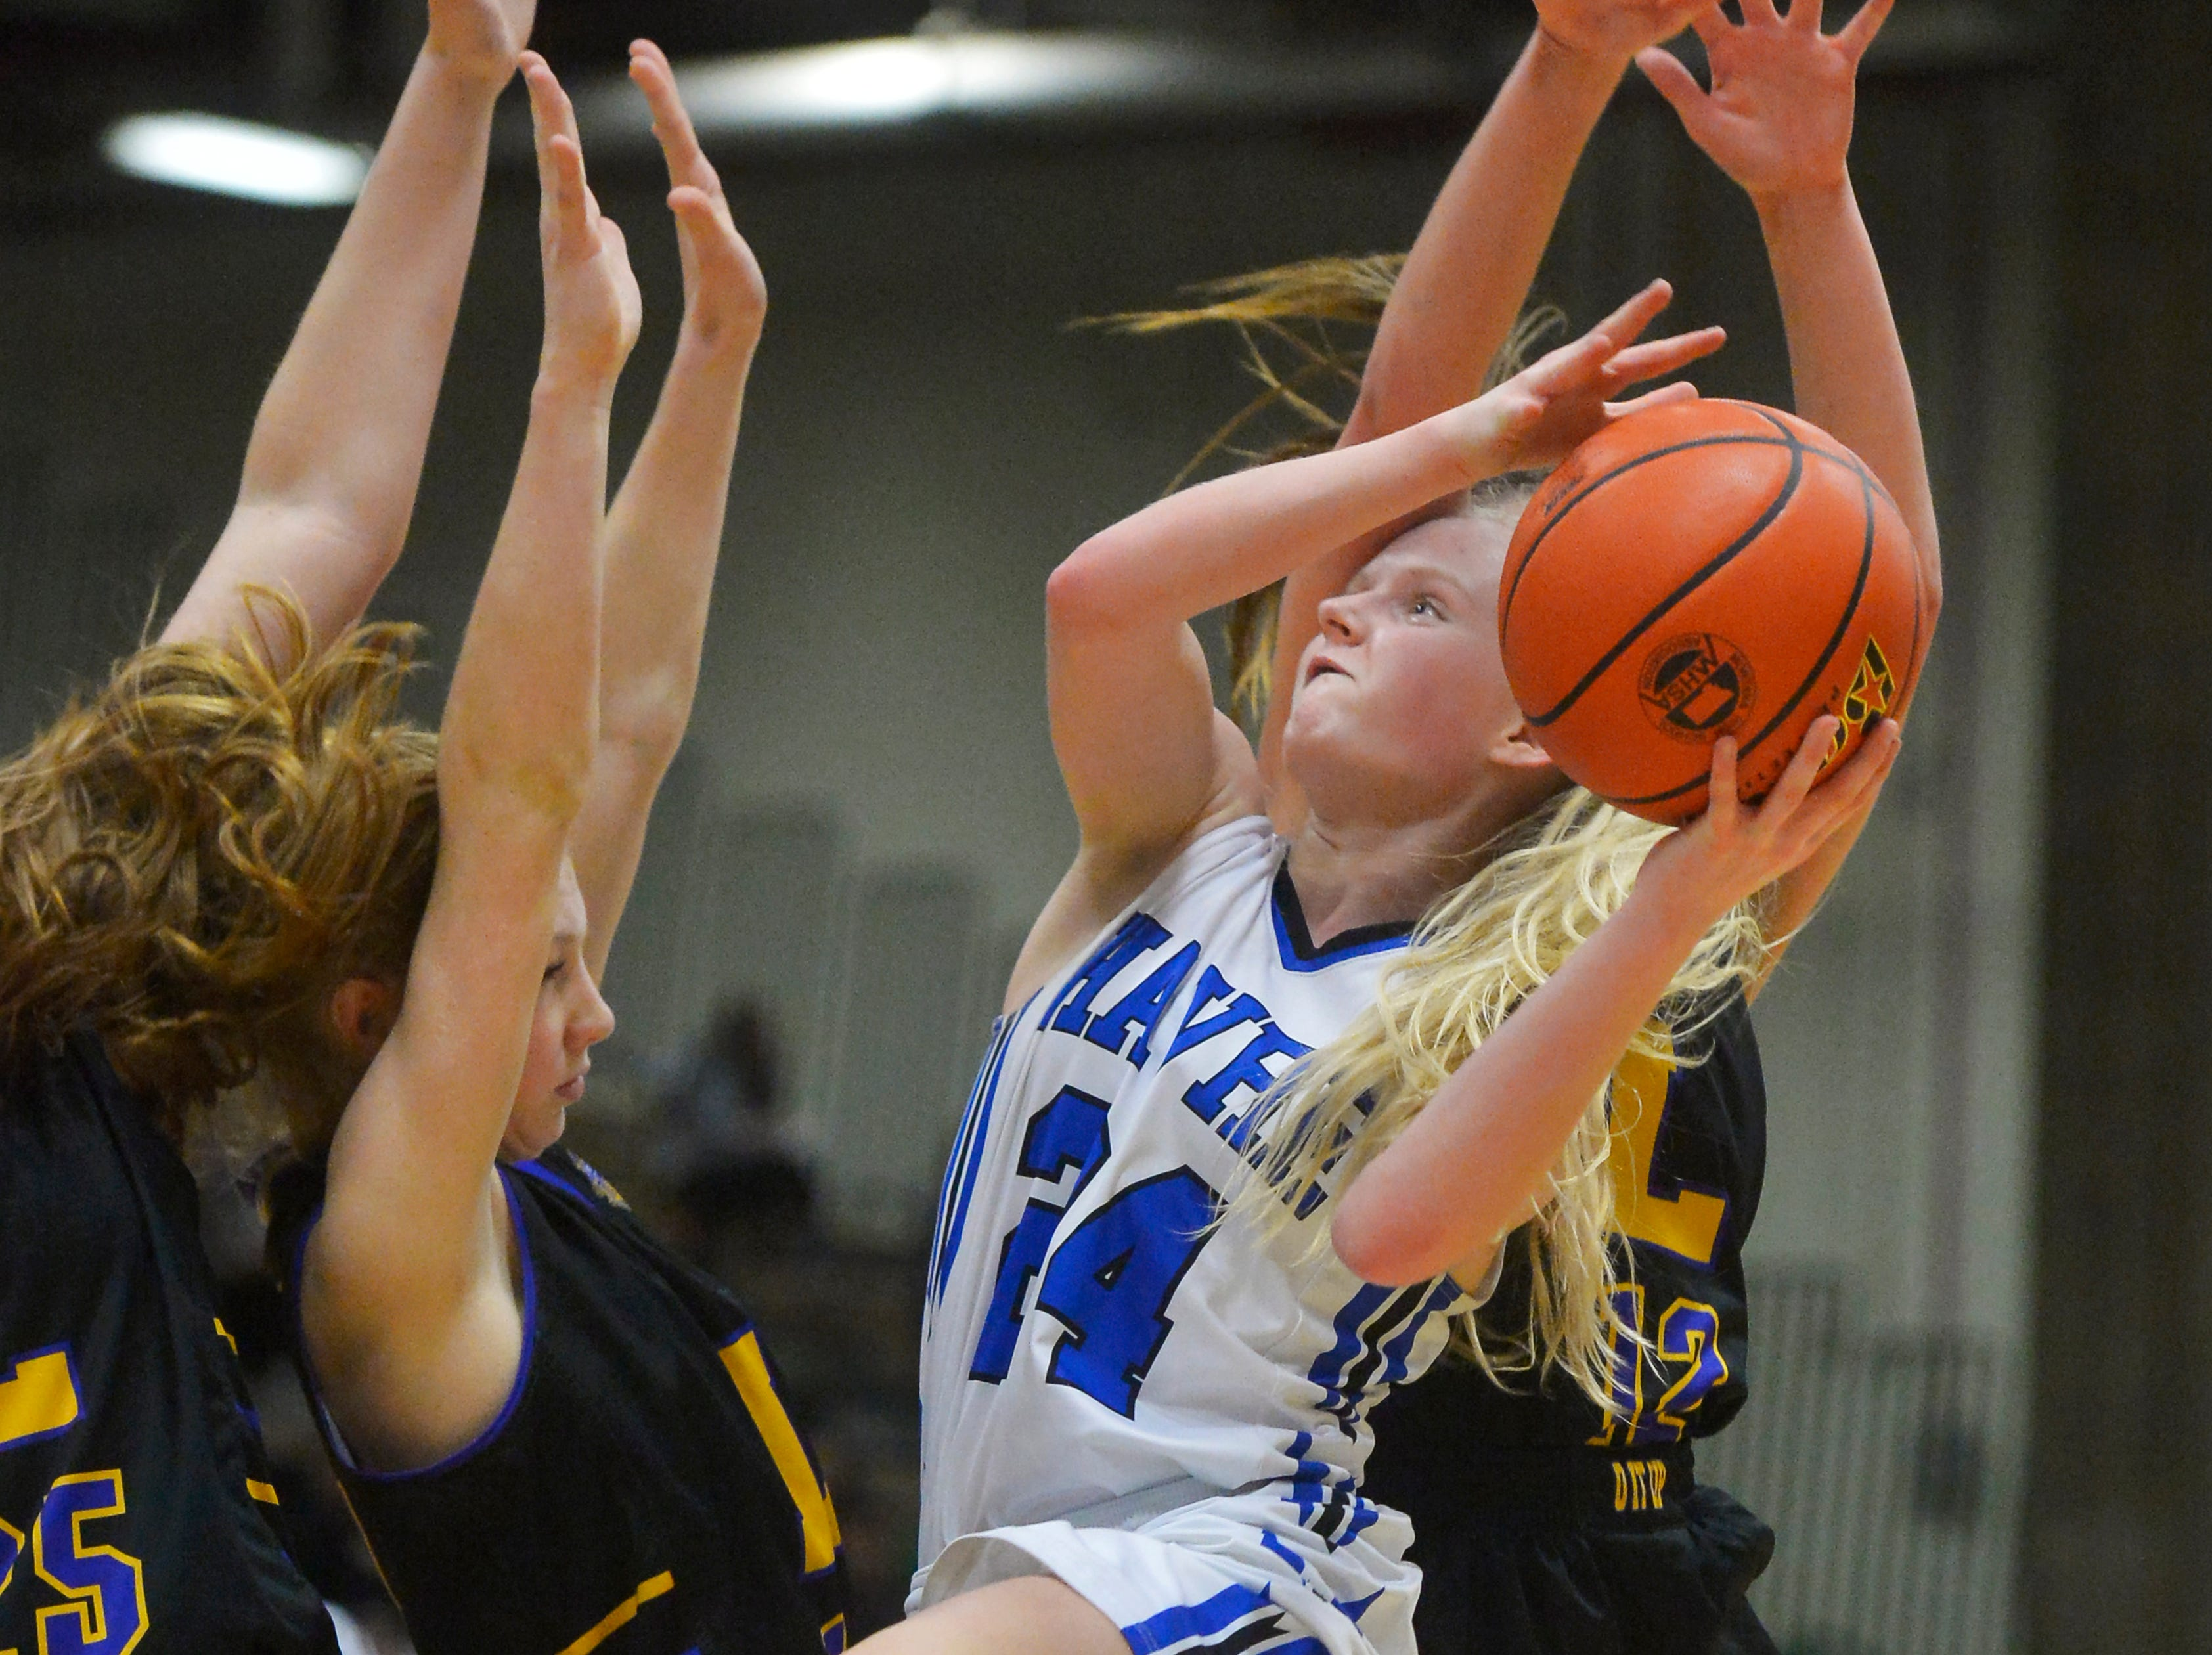 Havre's Sadie Filius attempts a shot while surrounded by Laurel defenders in the semifinal round of the State Class A Basketball Tournament in the Four Seasons Arena, Friday.